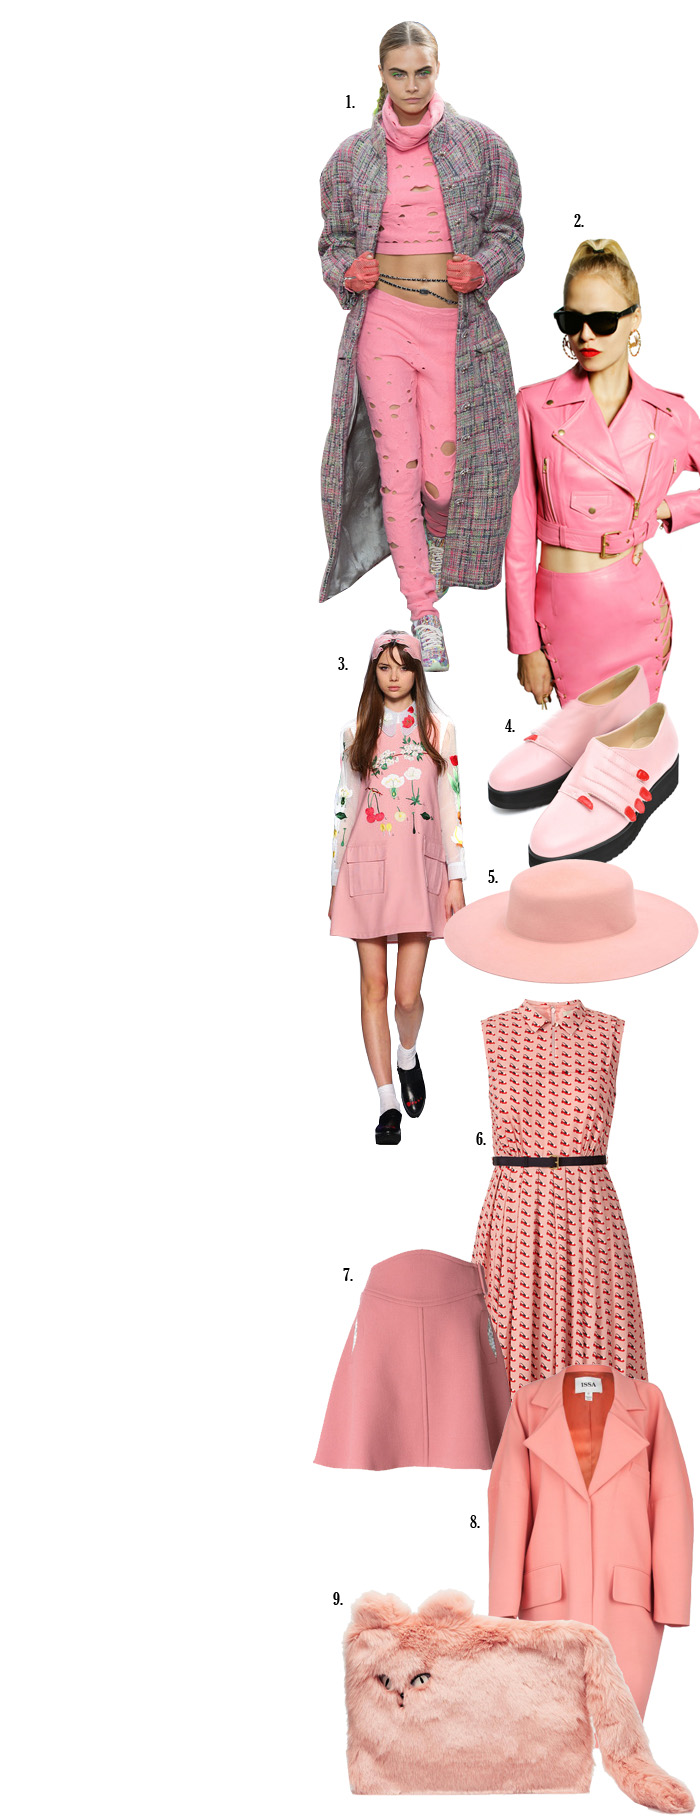 Hey girl, take a walk on the pink side | itfashion.com